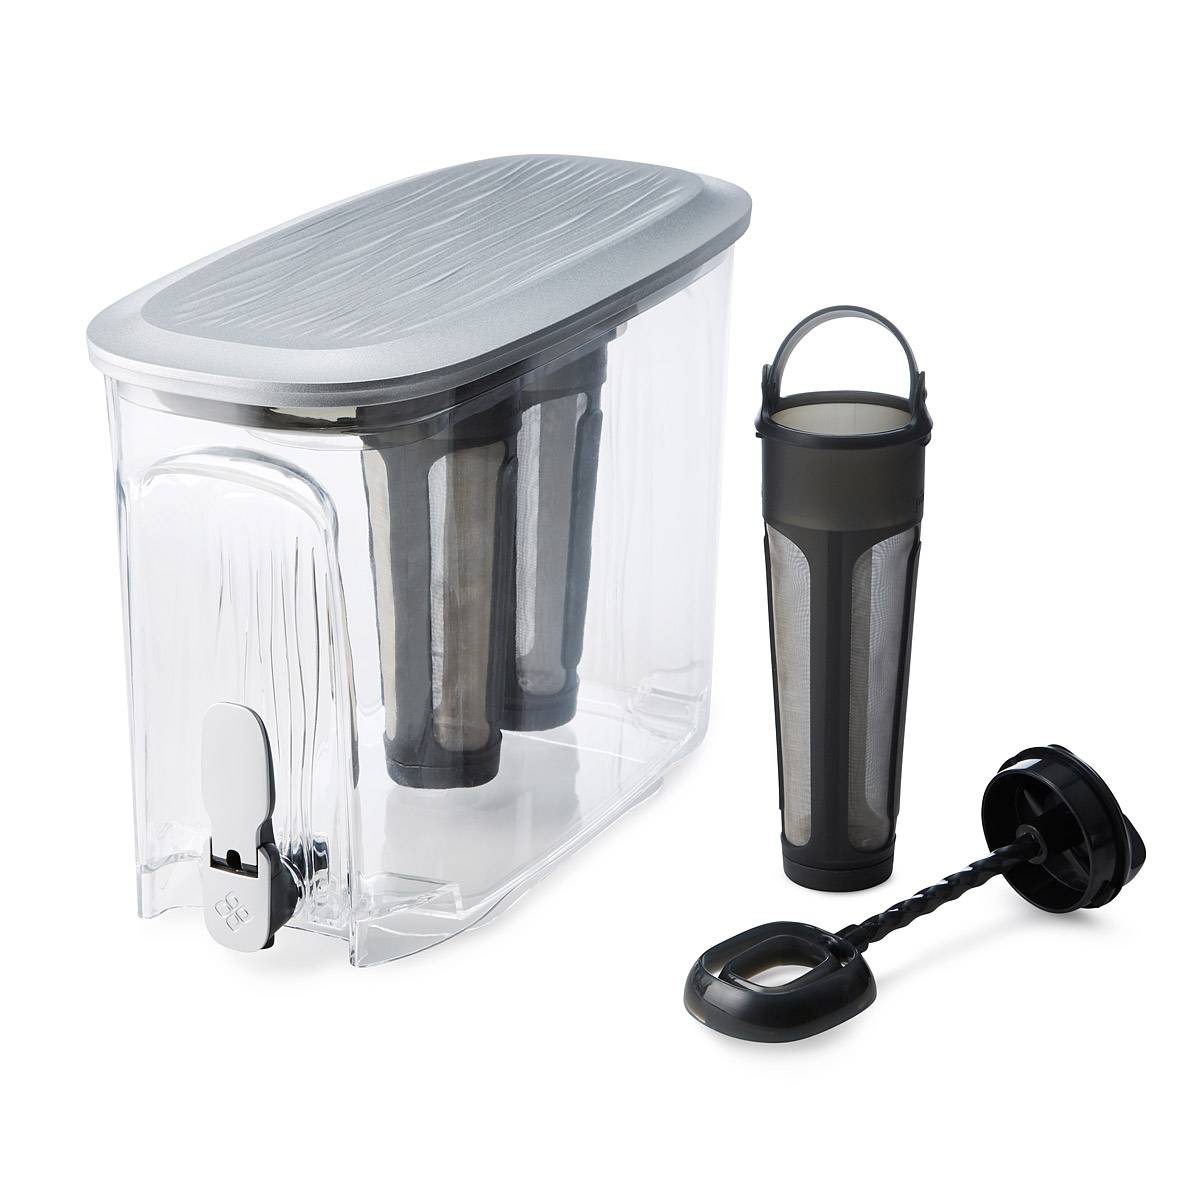 Cold Brew Coffee Maker / Dispenser - The Green Head